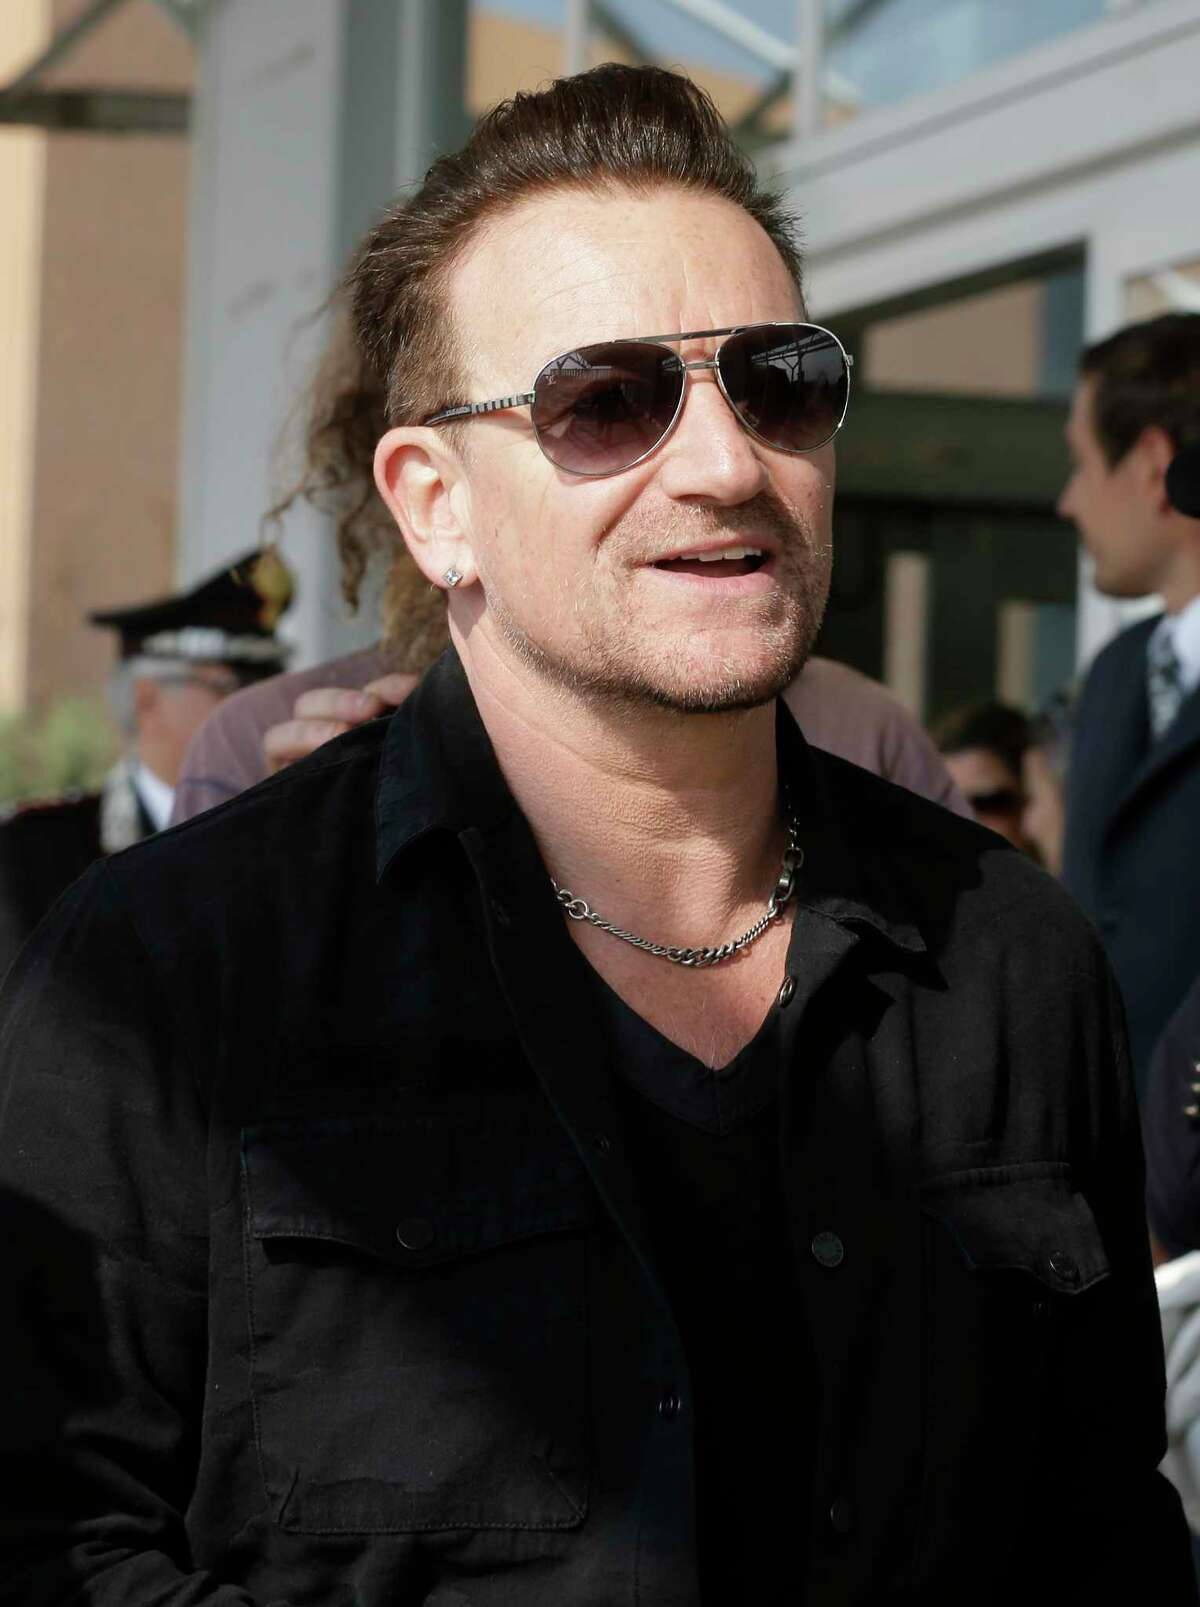 """FILE - In this Sept. 27, 2014 file photo, Bono smiles upon his arrival in Venice, Italy, to attend George Clooney's wedding ceremony. Bono says his ever-present sunglasses aren't a rock-star affectation ?- he has suffered from glaucoma for 20 years. told the BBC's """"Graham Norton Show"""" that he had the condition, but """"I have good treatments and I am going to be fine. (AP Photo/Luca Bruno, File) ORG XMIT: NYET553"""